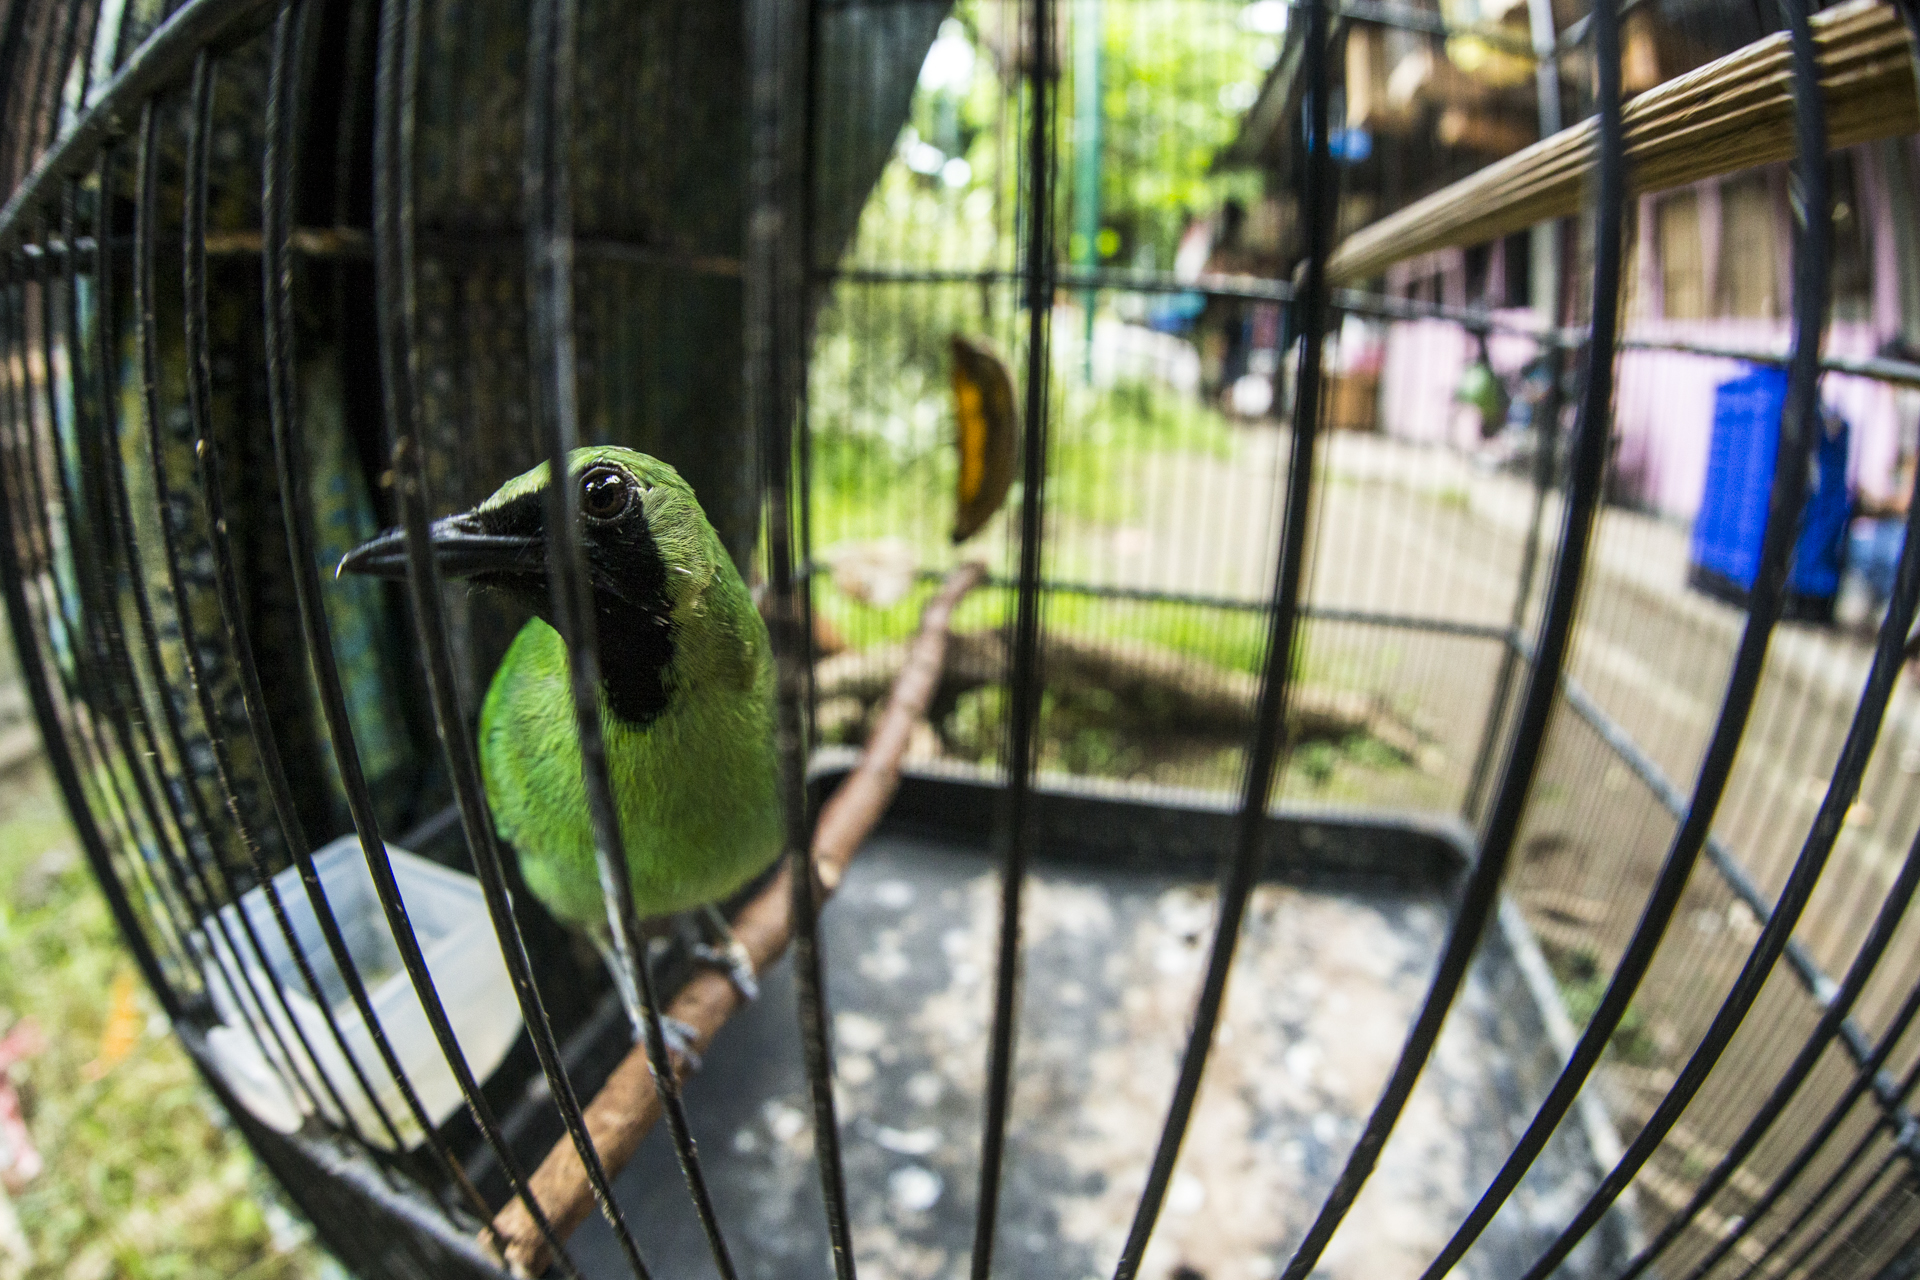 A greater green leafbird, one of the most commonly seen birds for sale in the markets.